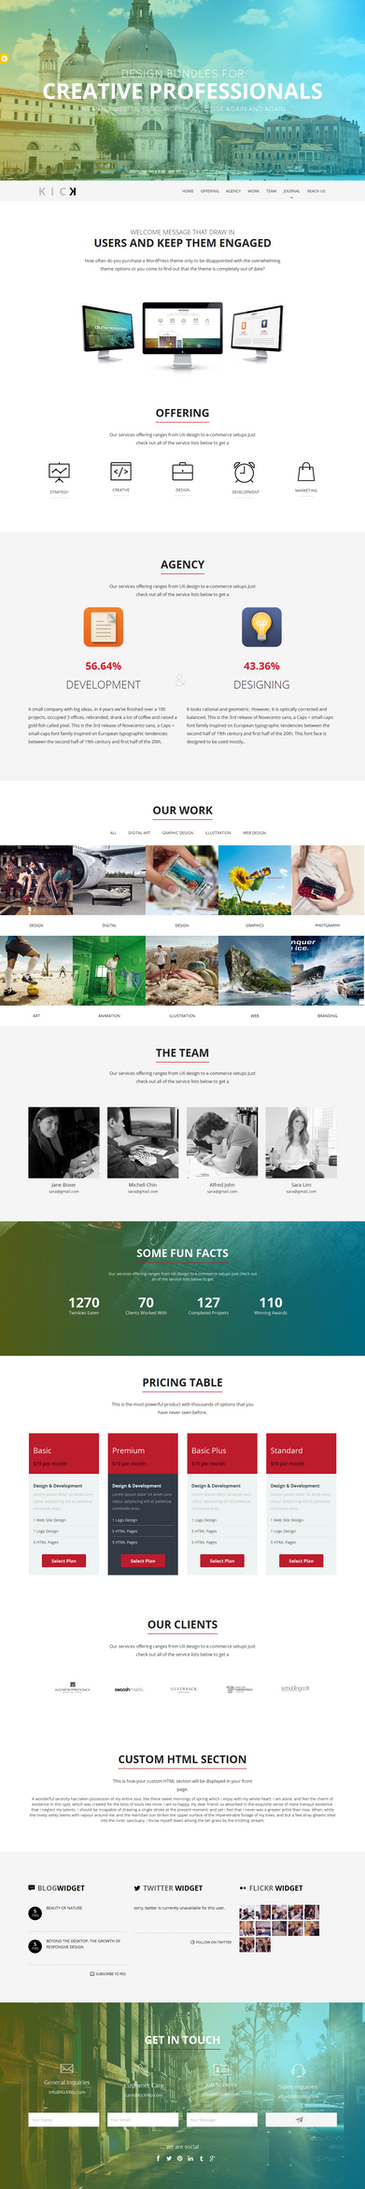 Kick - WordPress Theme by sandracz